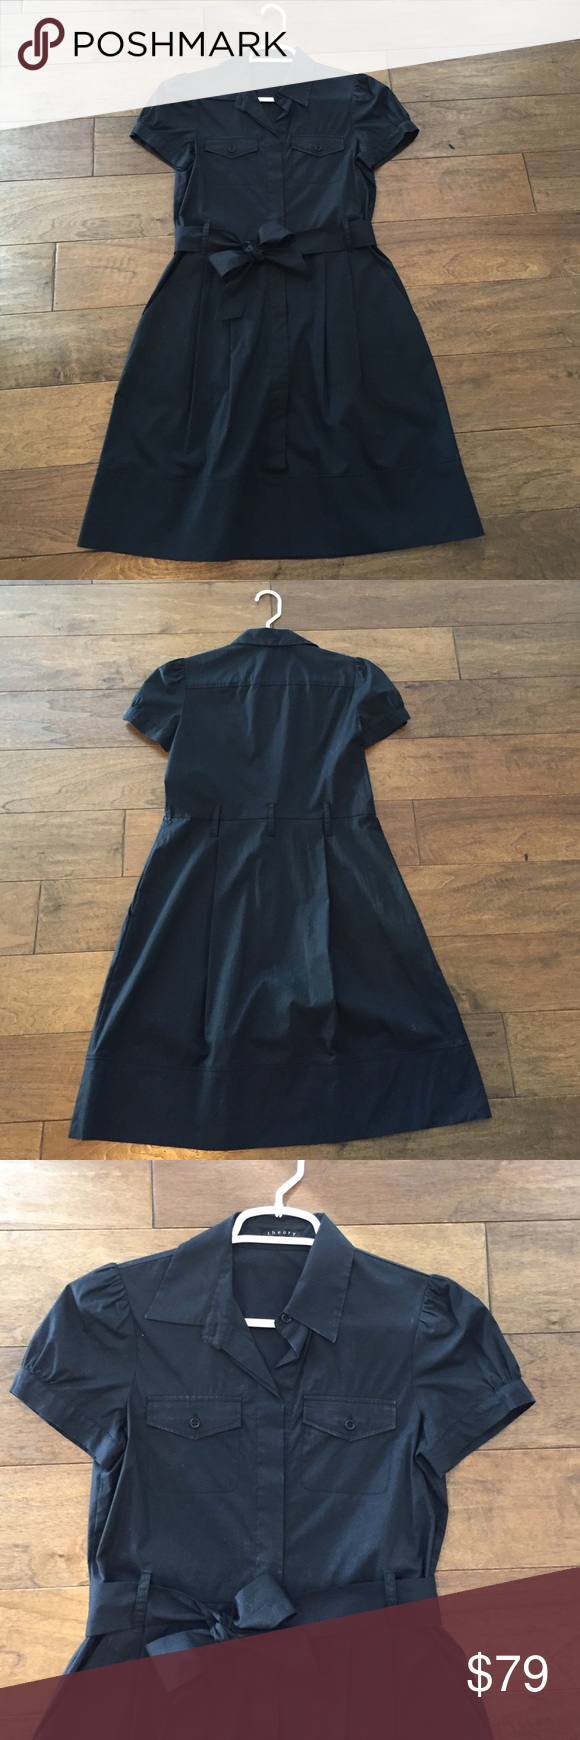 Theory black dress Theory black work dress with black ribbon belt tie. Never worn. Theory Dresses